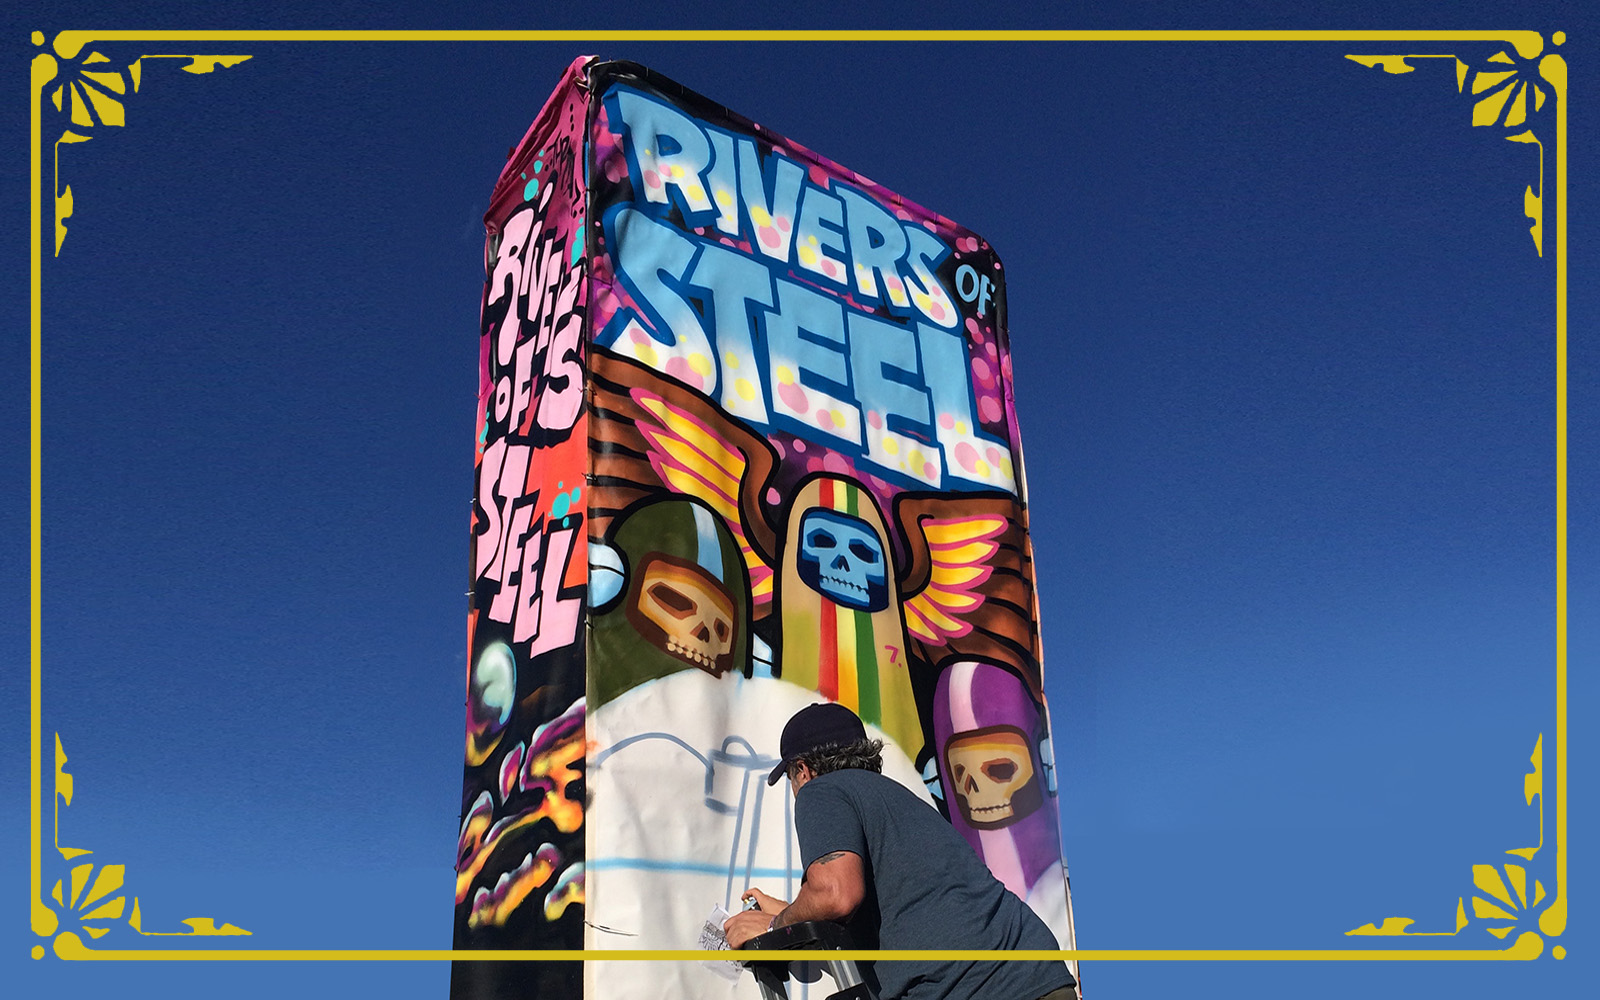 artist Matt sphar paints a mural tower